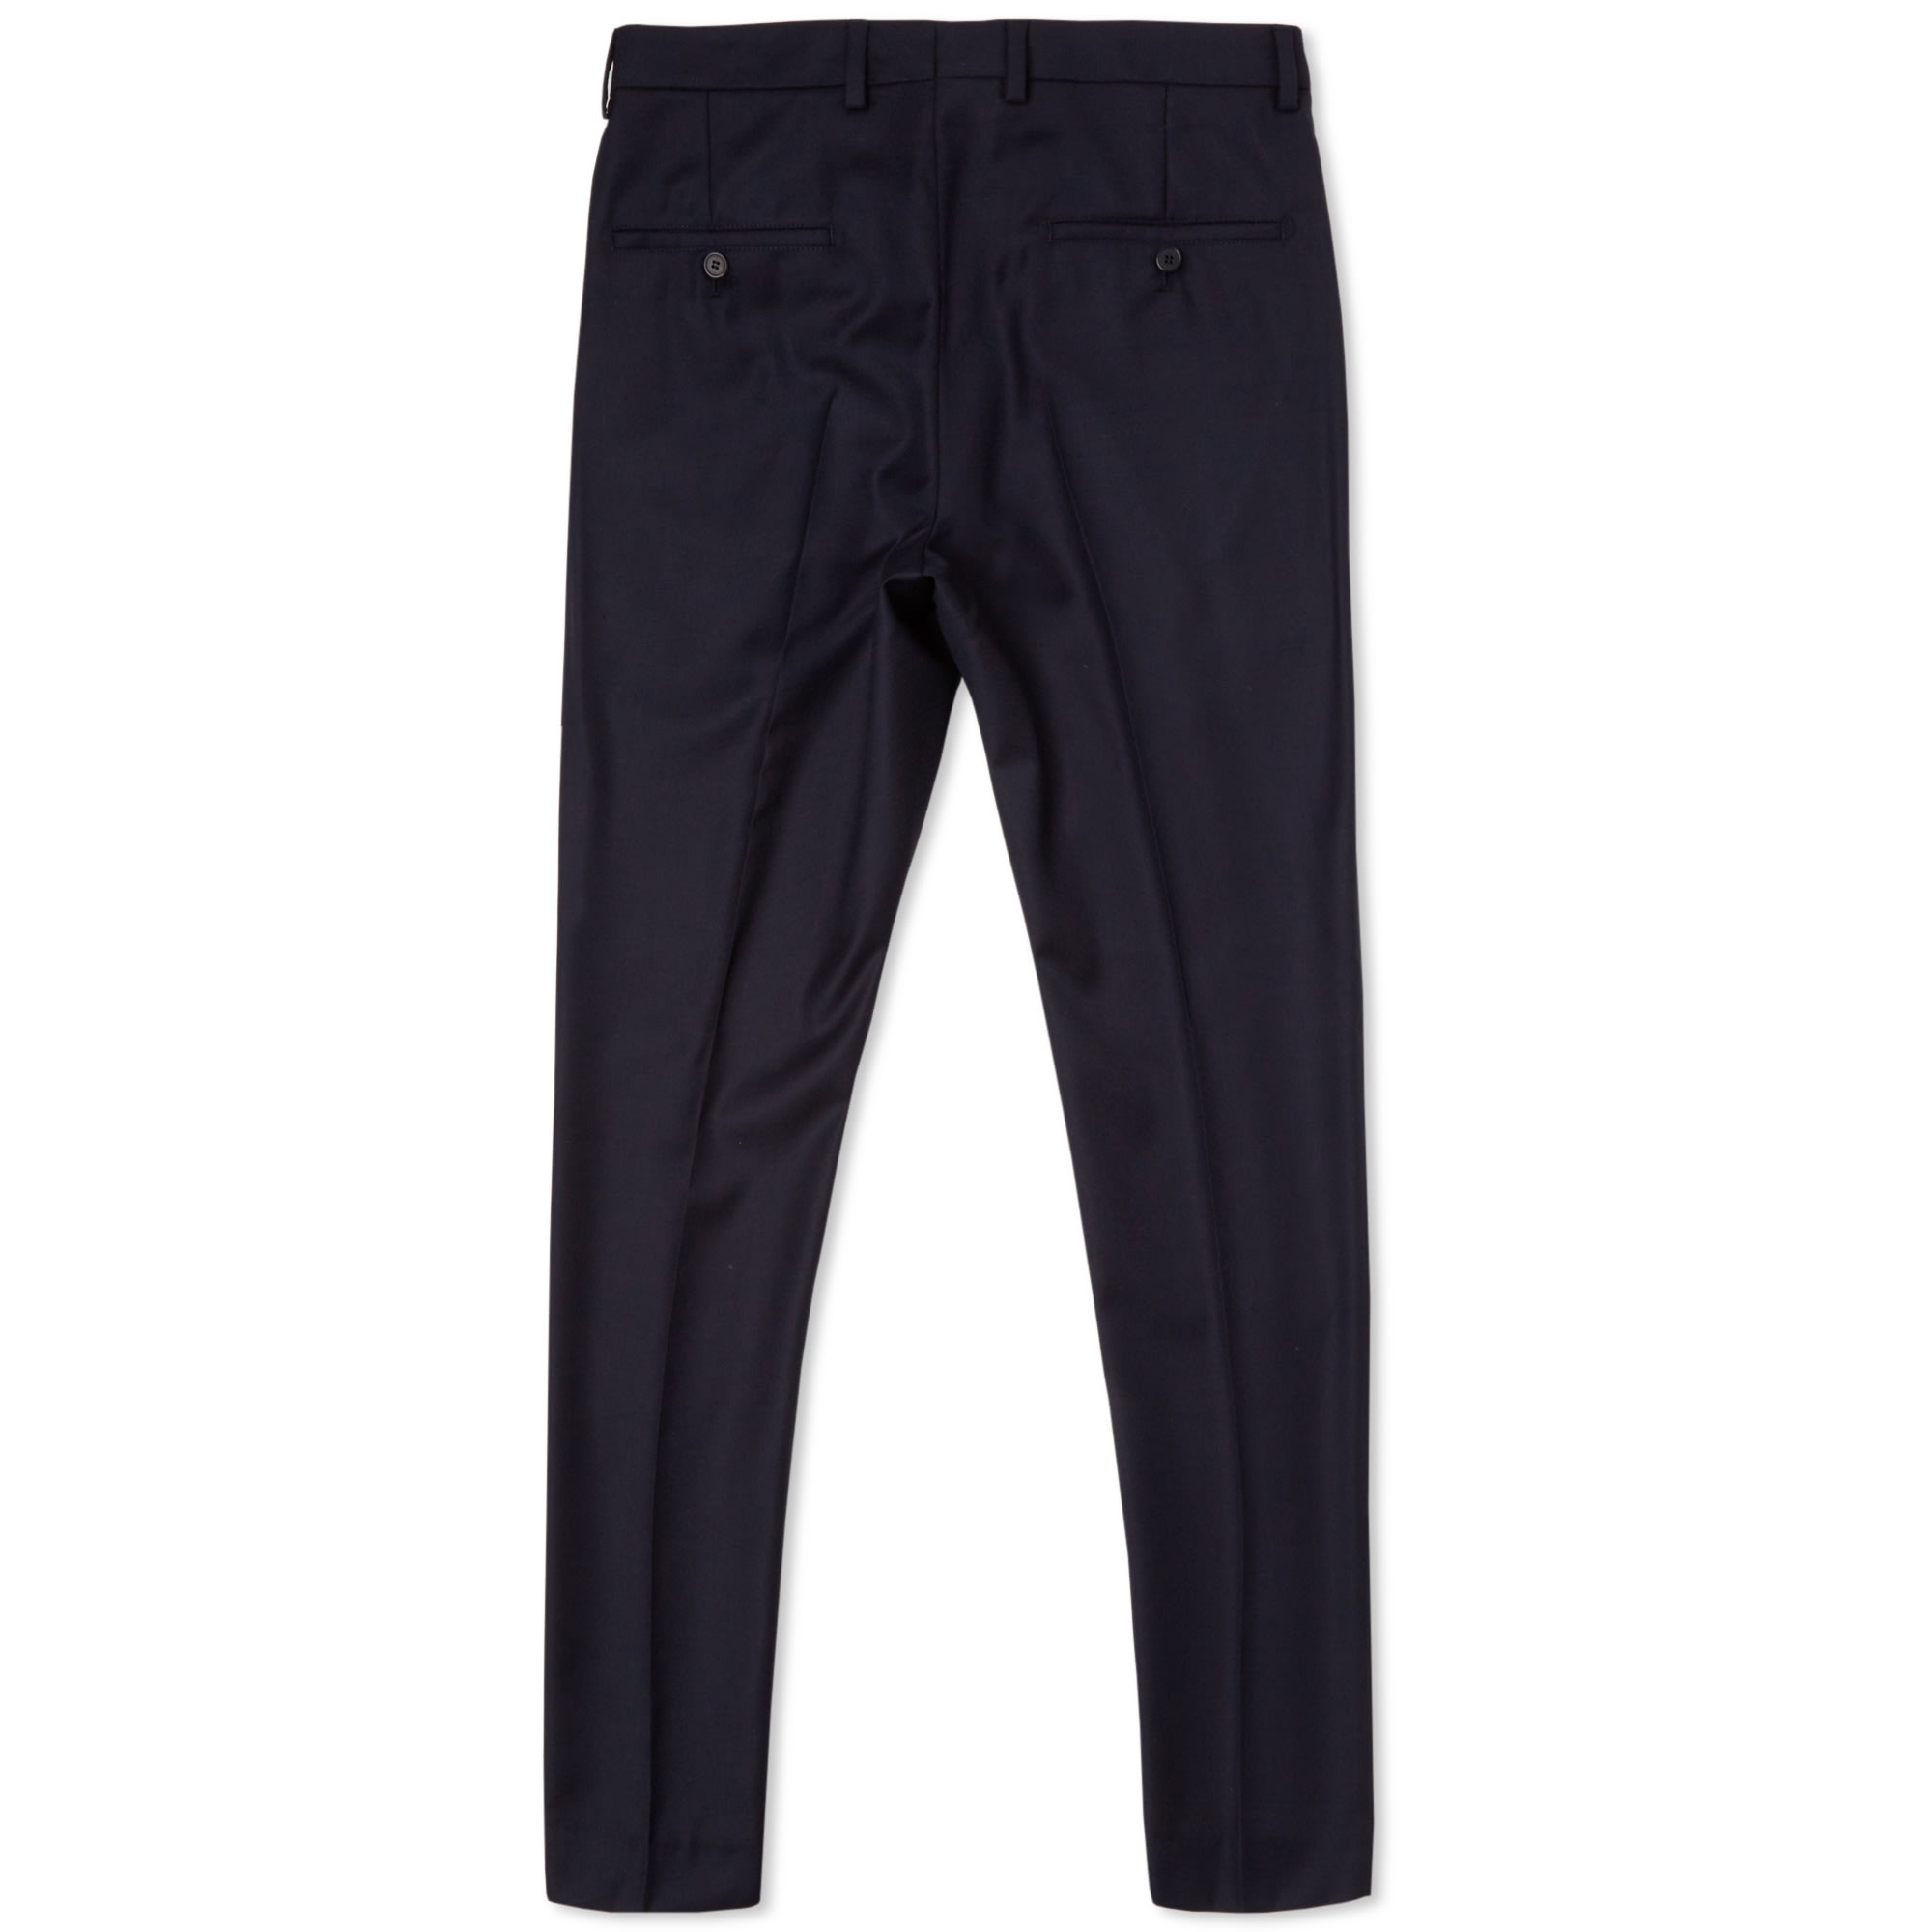 98bf33e73aec64 AMI Carrot Fit Trouser Marine | END.